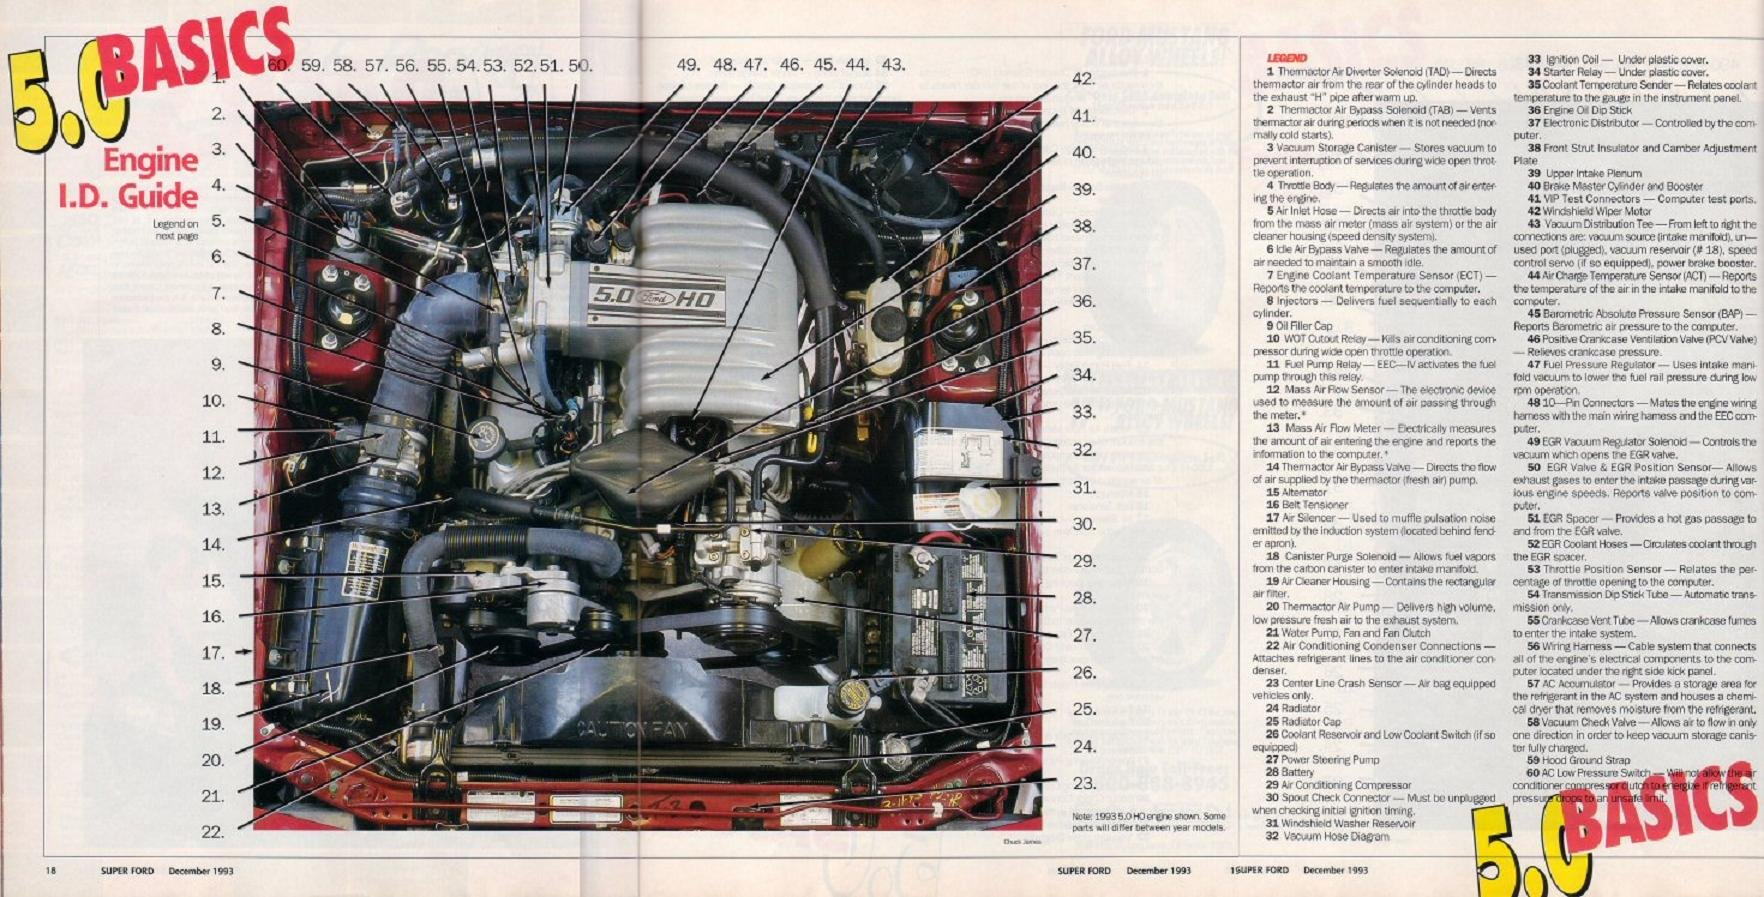 1988 mustang 302 Starting/Ignition issues-index.jpg